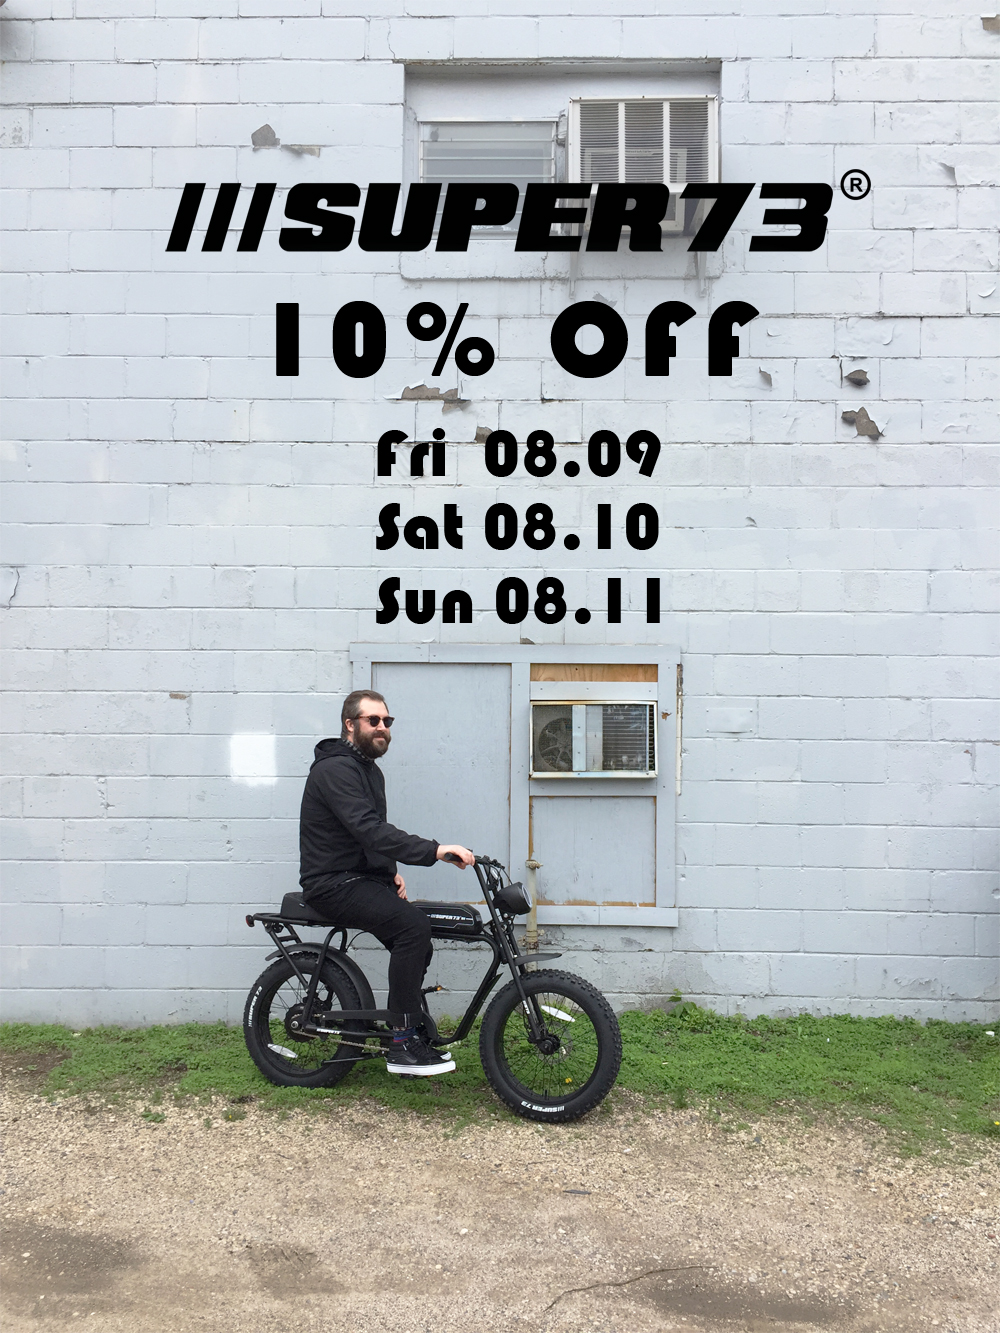 E|News. Super73 Sale This Weekend!